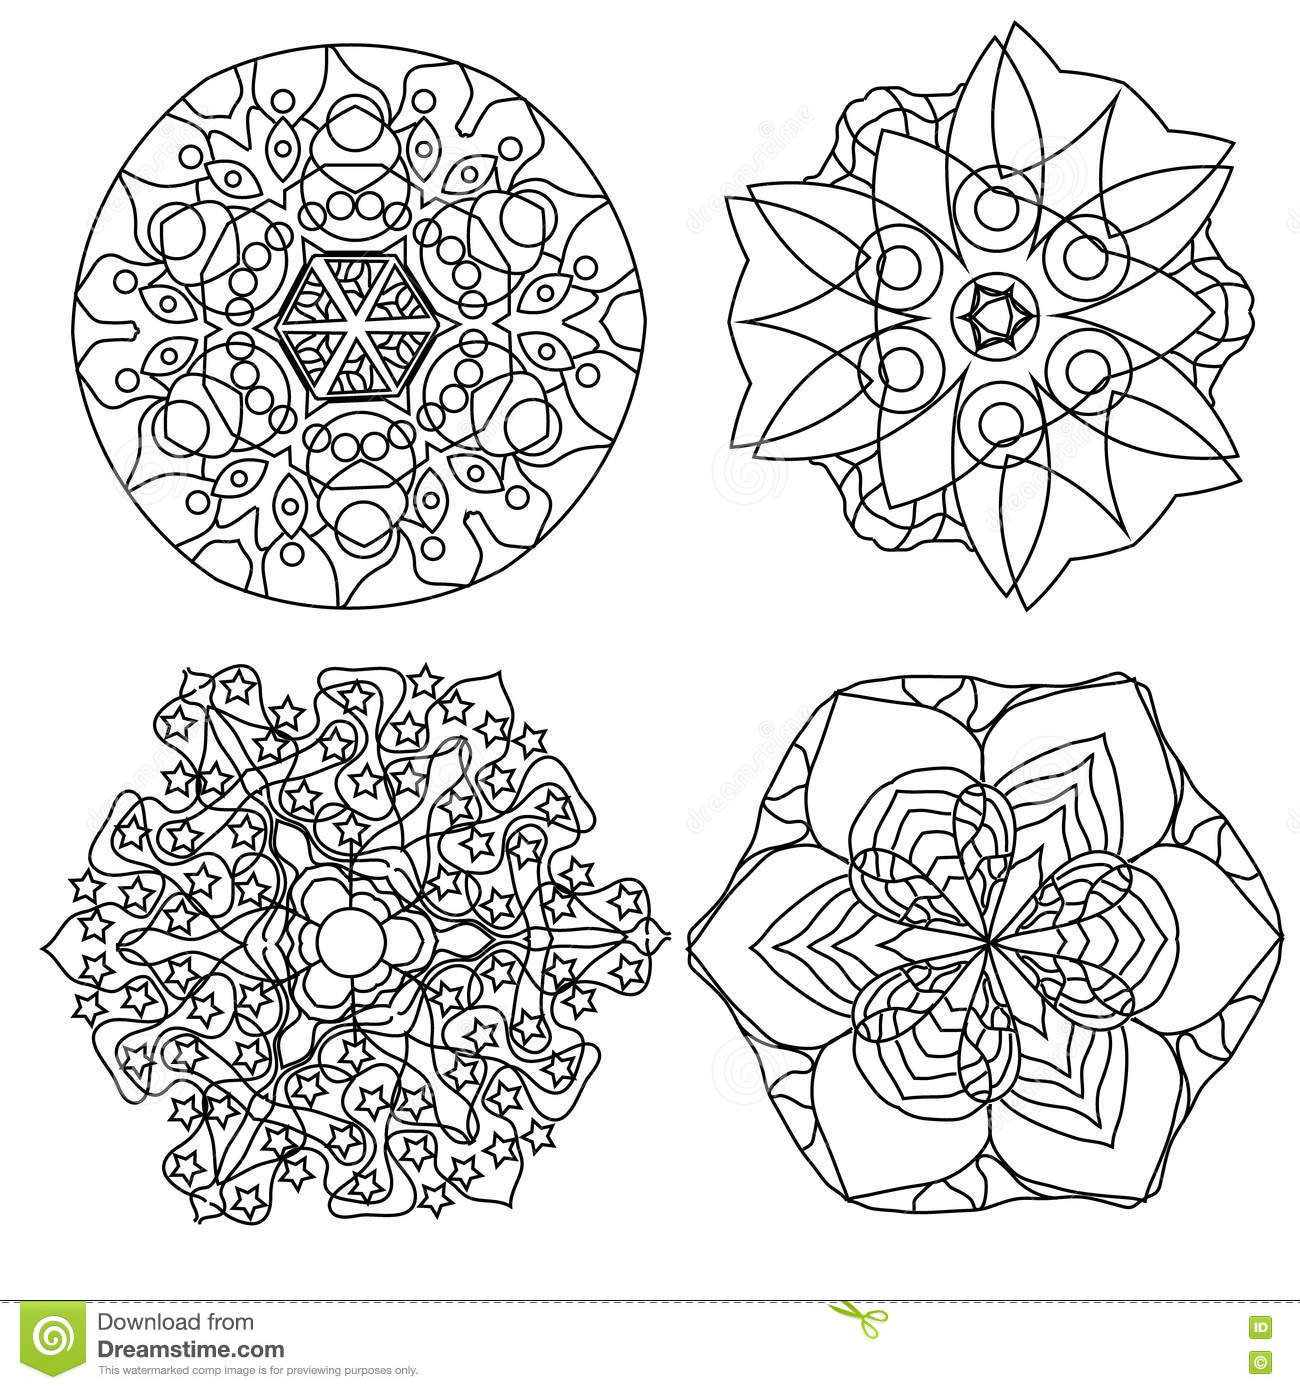 Relaxing Coloring Page With Mandala, Abstract Flowers For